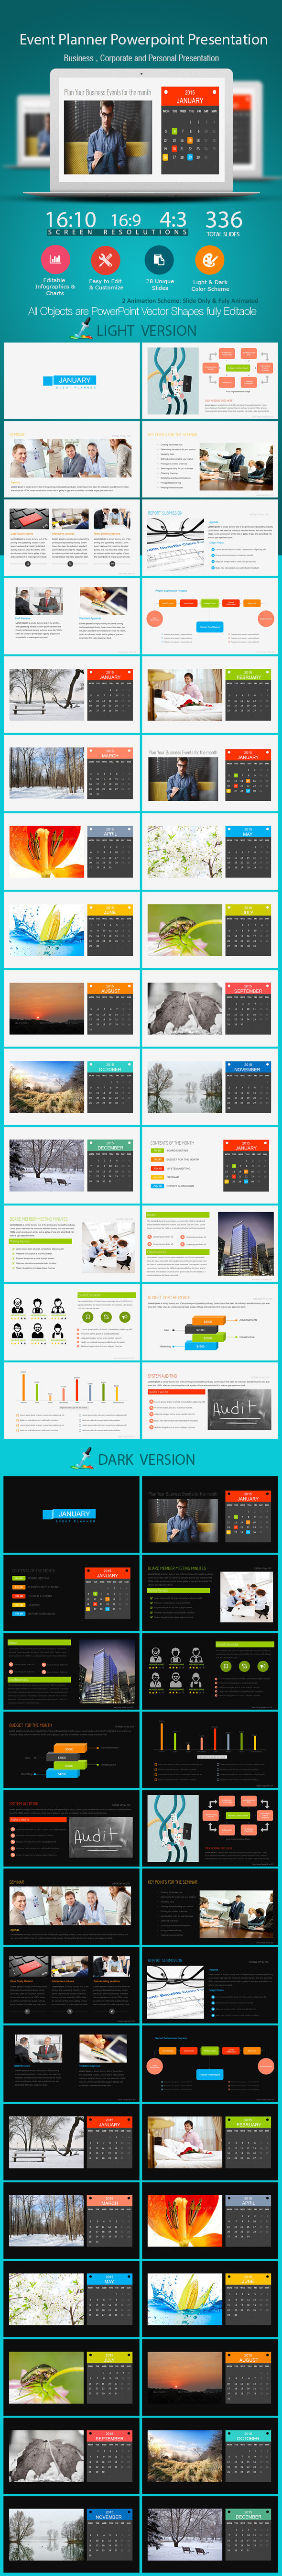 Event Planner Power Point Presentation - PowerPoint Templates Presentation Templates